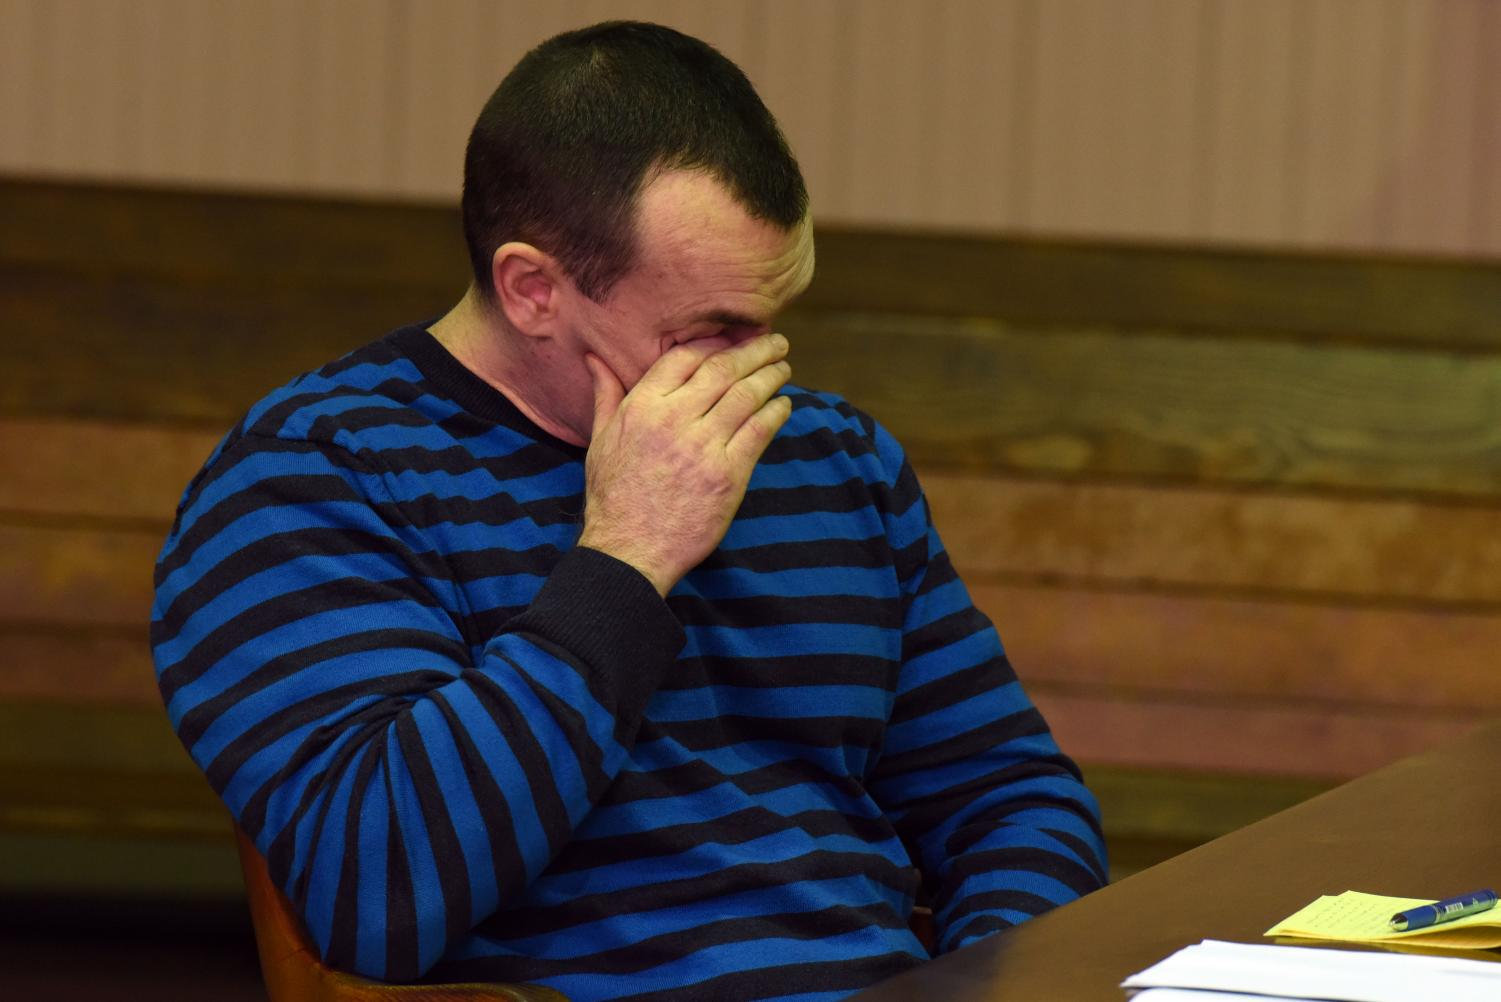 John J. Iden, Jr. becomes emotional while his defense attorney, Jeff Blosser, presents his closing statement on Monday.